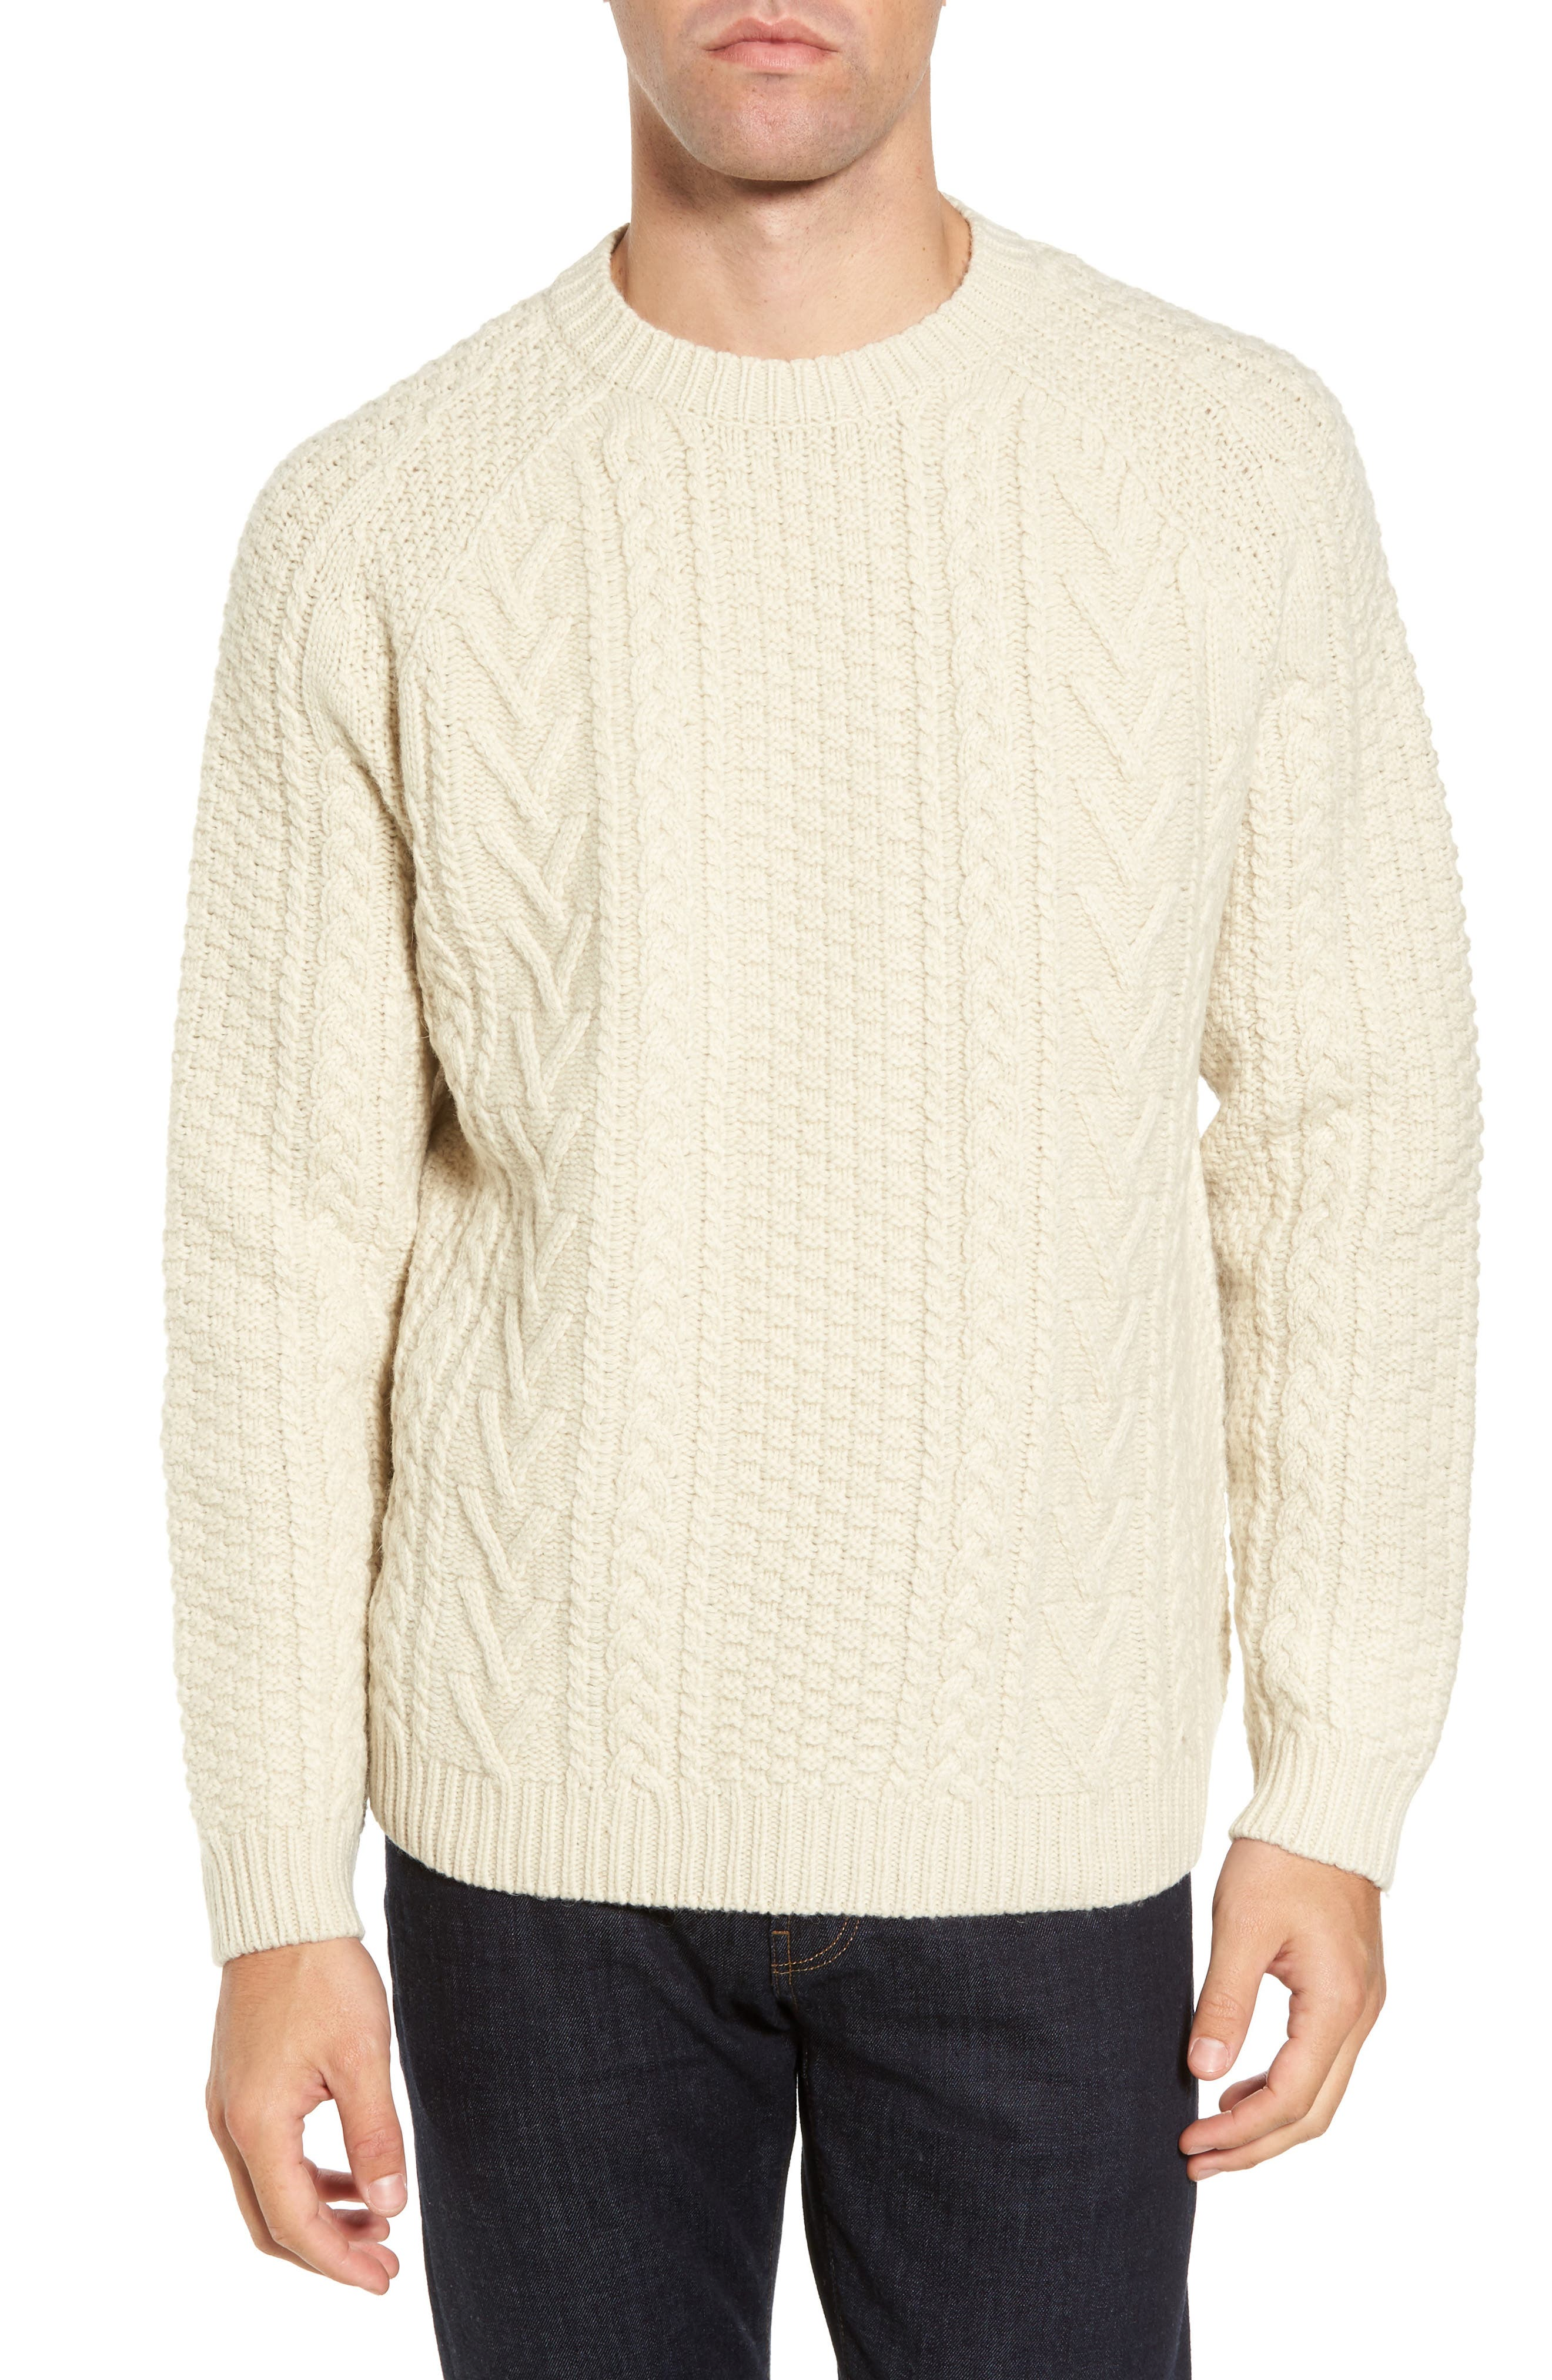 Fisherman Knit Wool Blend Sweater,                         Main,                         color, OFF WHITE